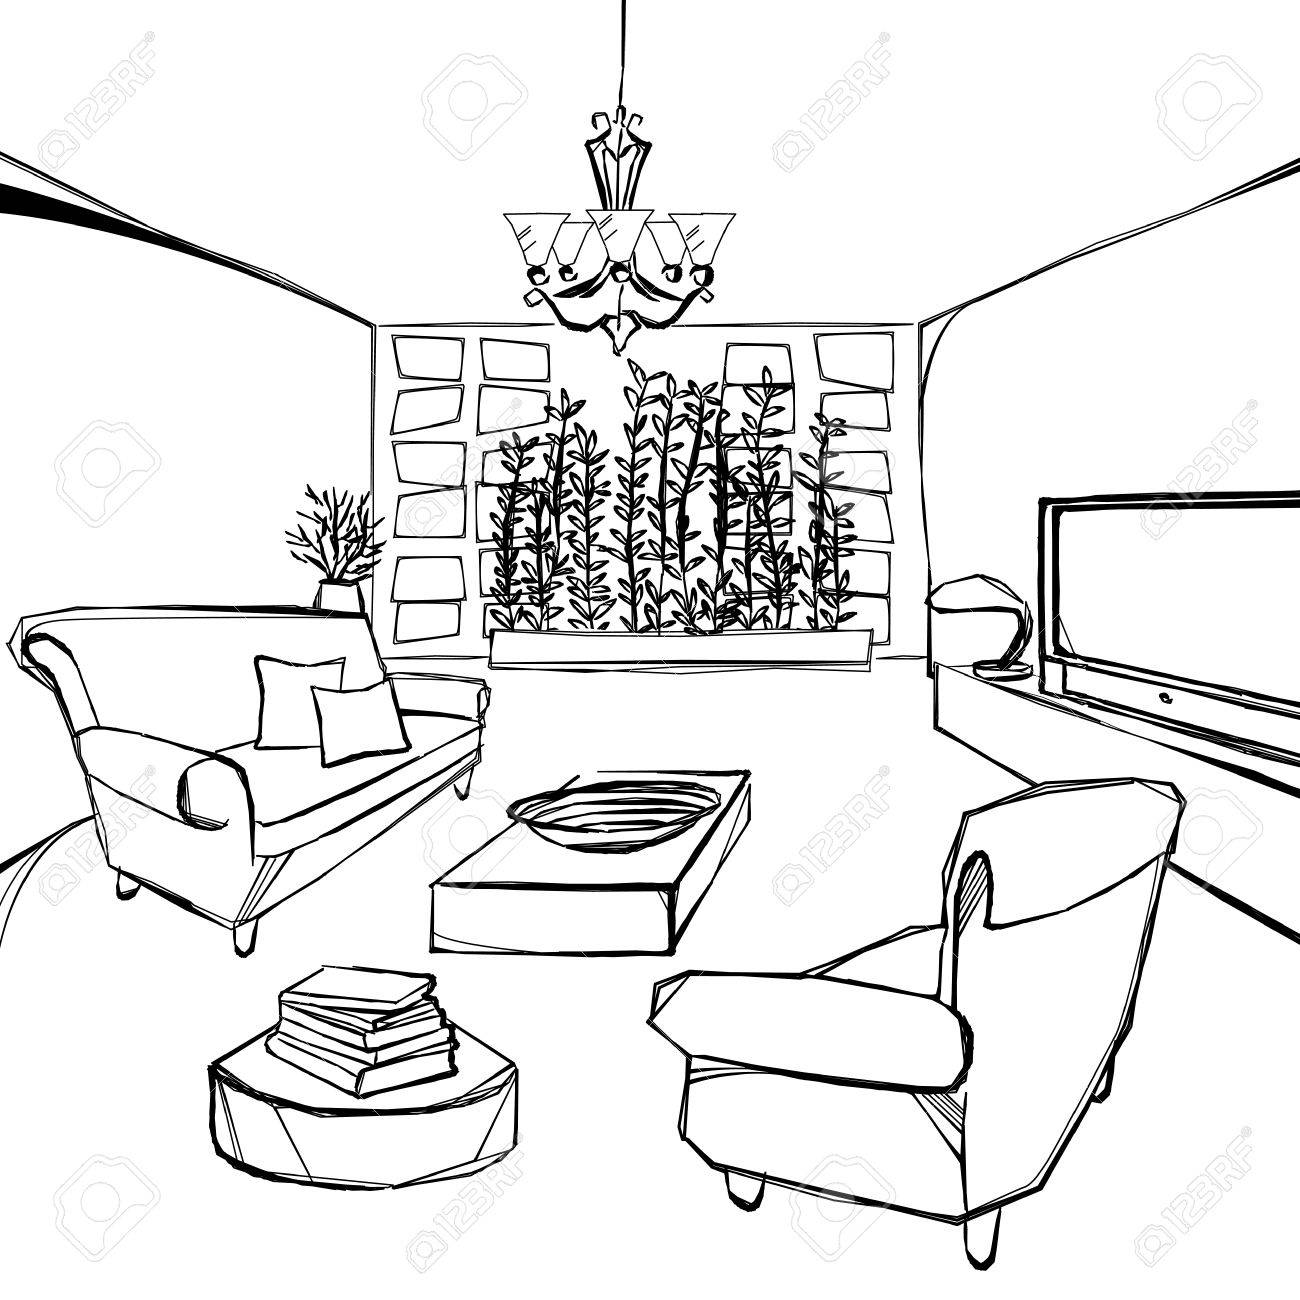 A Great Living Room Sketch Royalty Free Cliparts, Vectors, And Stock ...